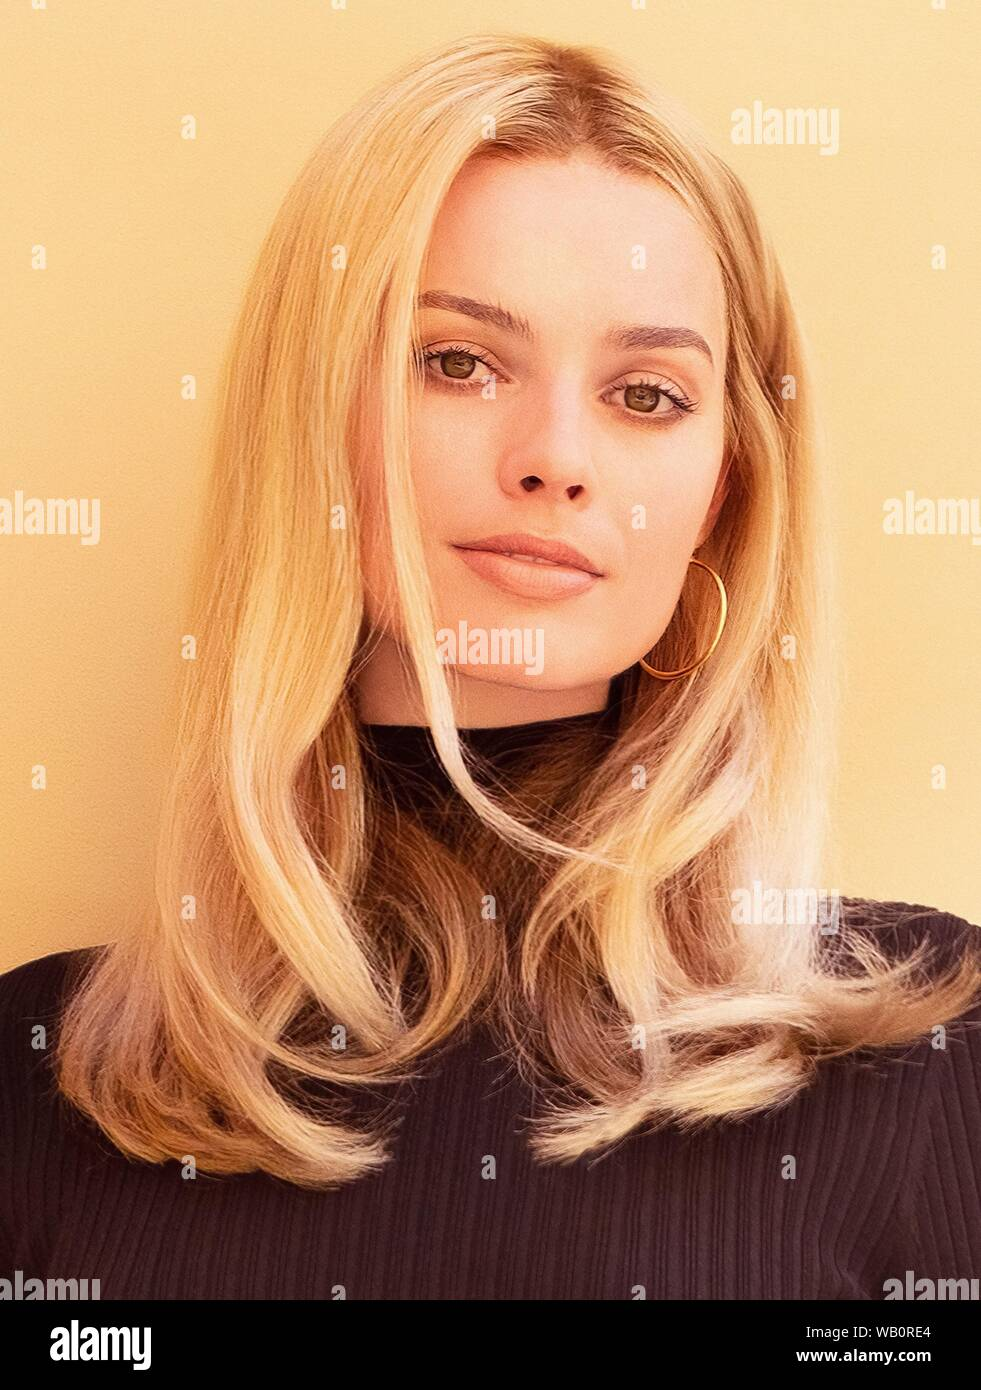 Margot Robbie In Once Upon A Time In Hollywood 2019 Directed By Quentin Tarantino Credit Heyday Films Album Stock Photo Alamy